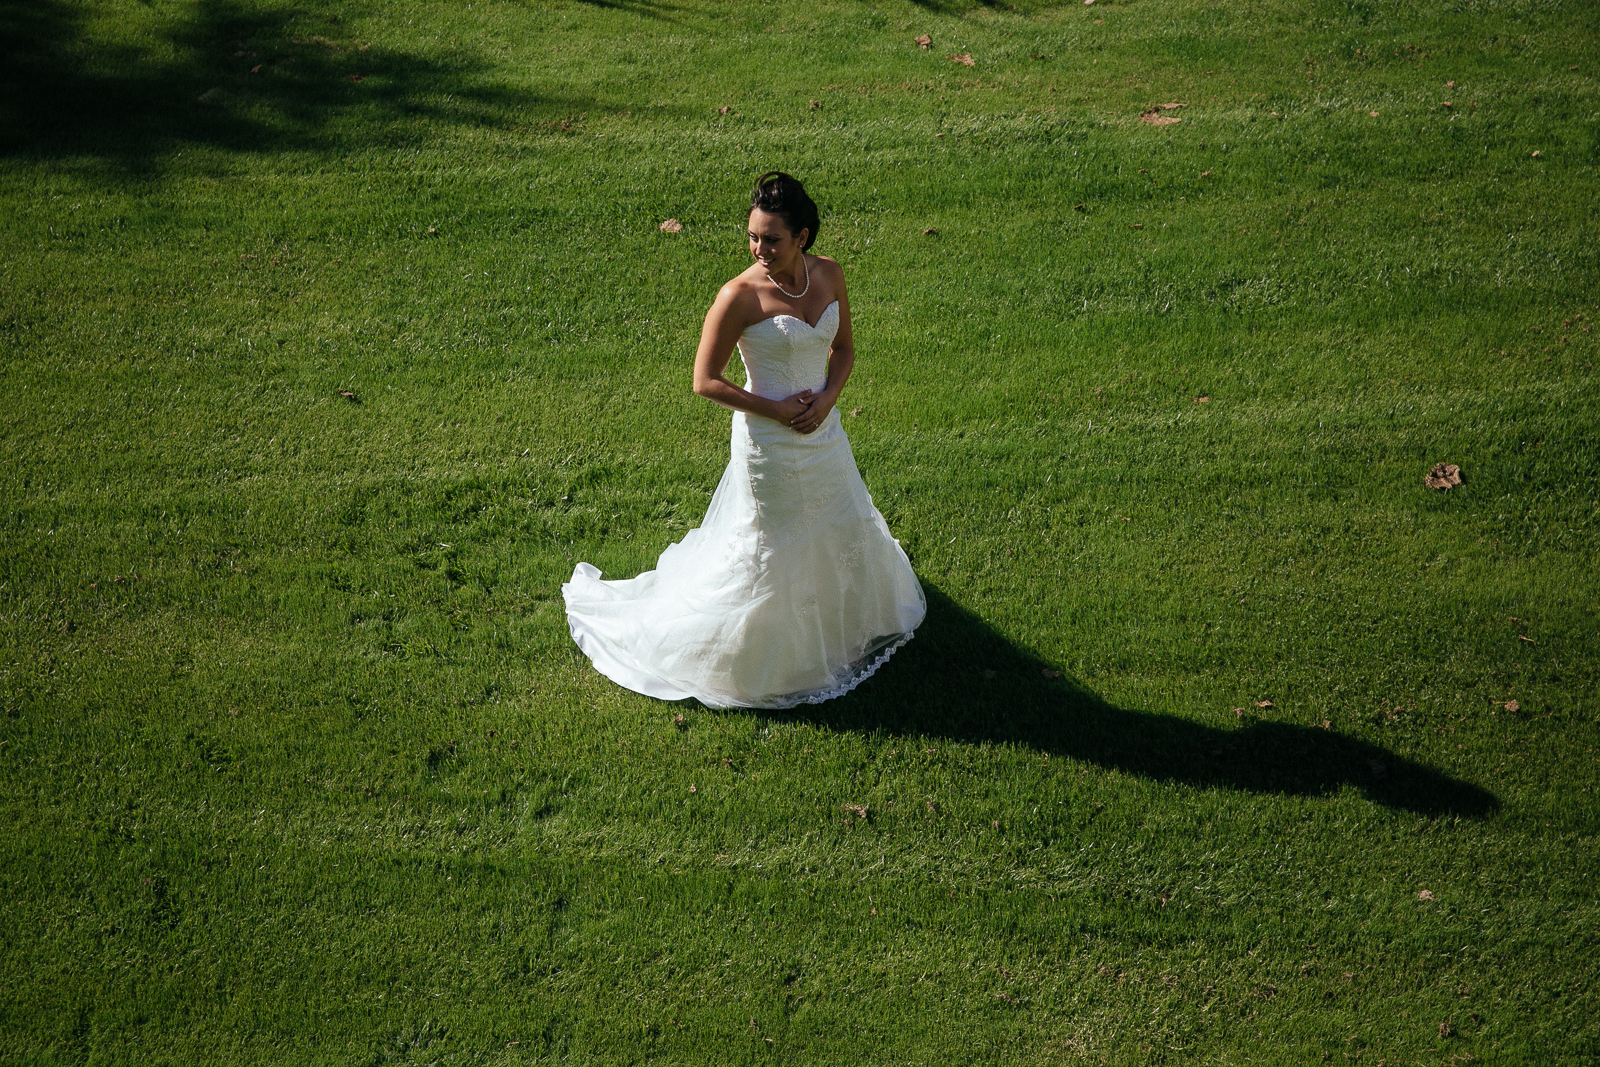 SAMANTHA_&_LUCAS_LEO_CARRILLO_LEAF_WEDDING_PHOTOGRAPHY_20147X9A8160.JPG